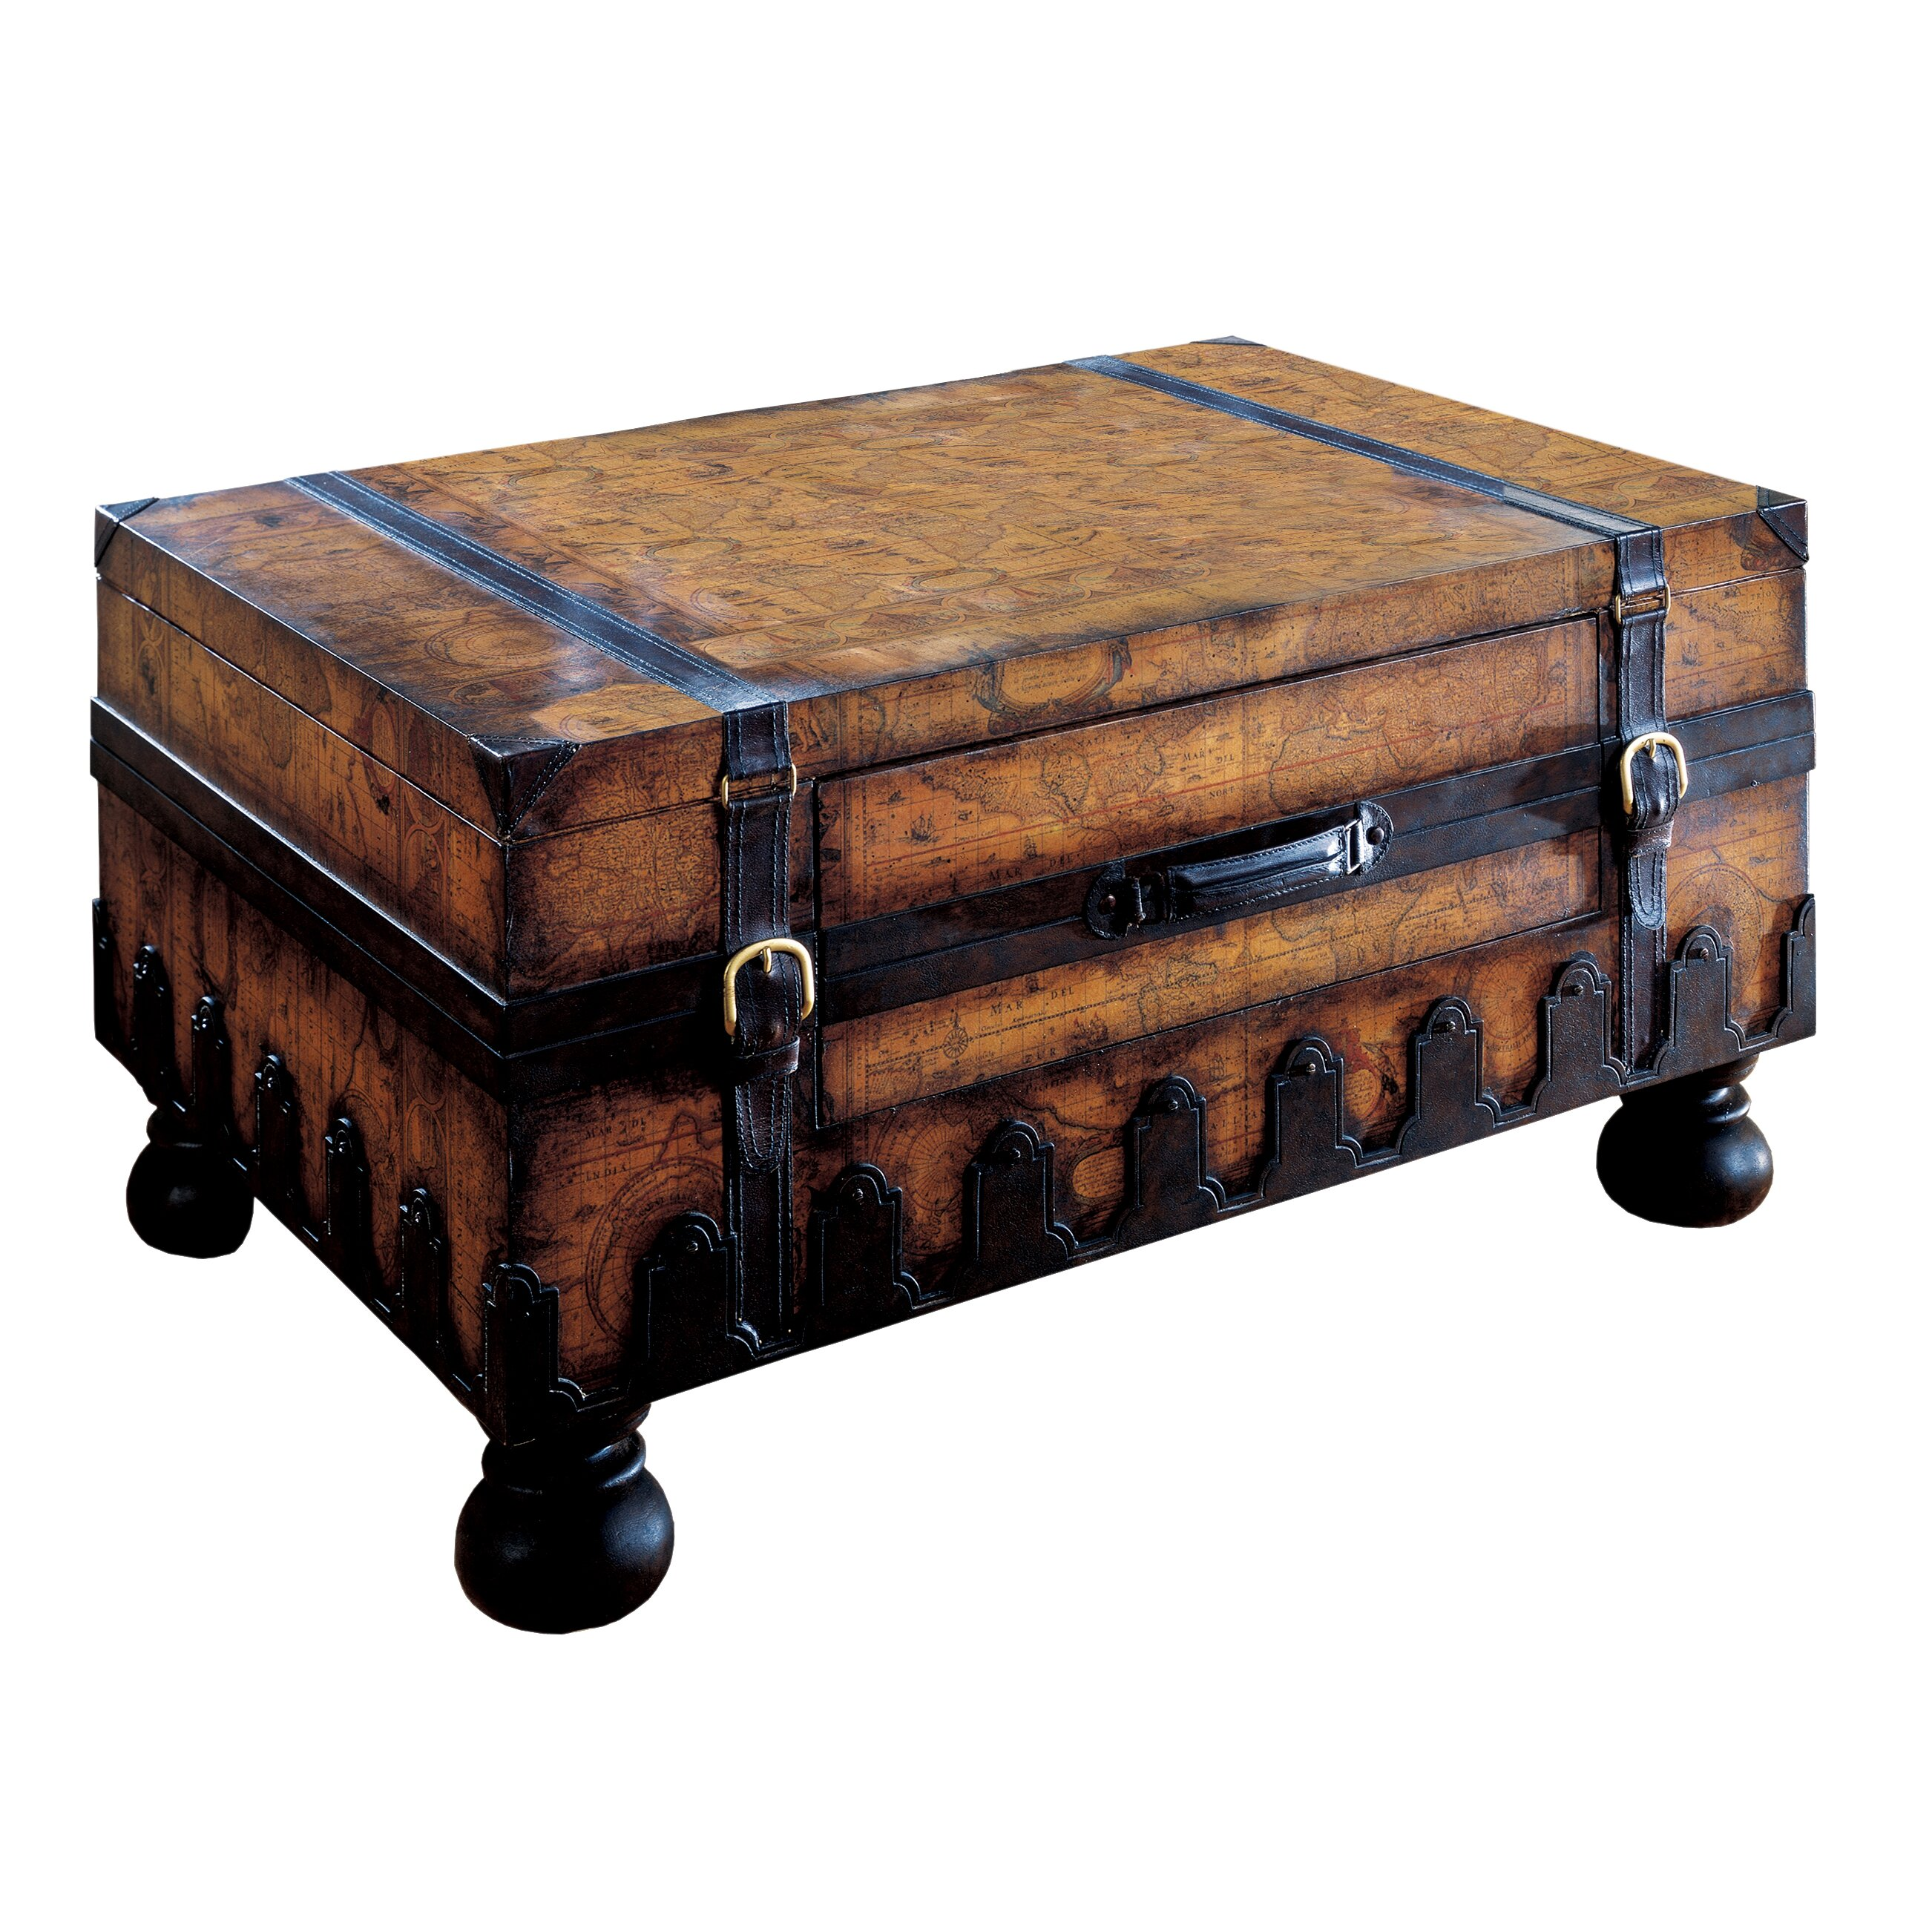 Butler heritage trunk coffee table reviews wayfair Trunks coffee tables